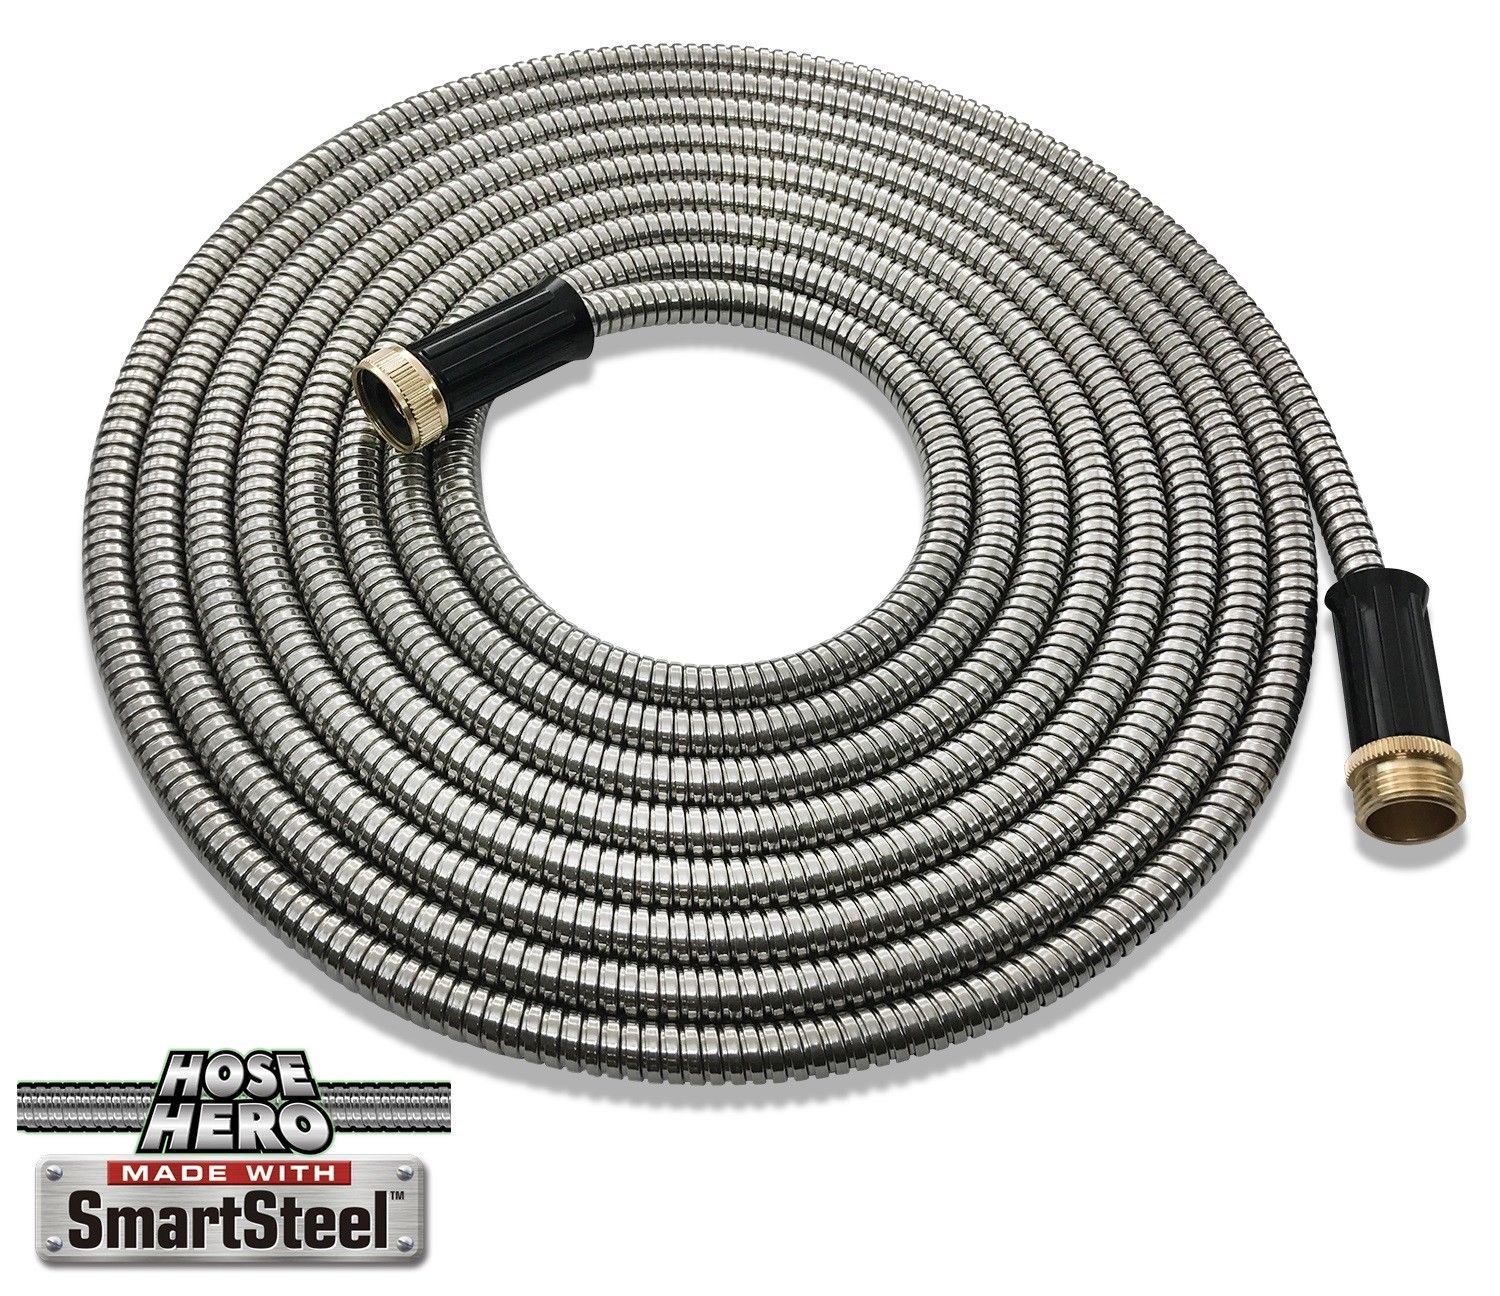 Hose Hero As Seen On TV Smart Steel Light Weight 25 Feet Metal Garden Hose